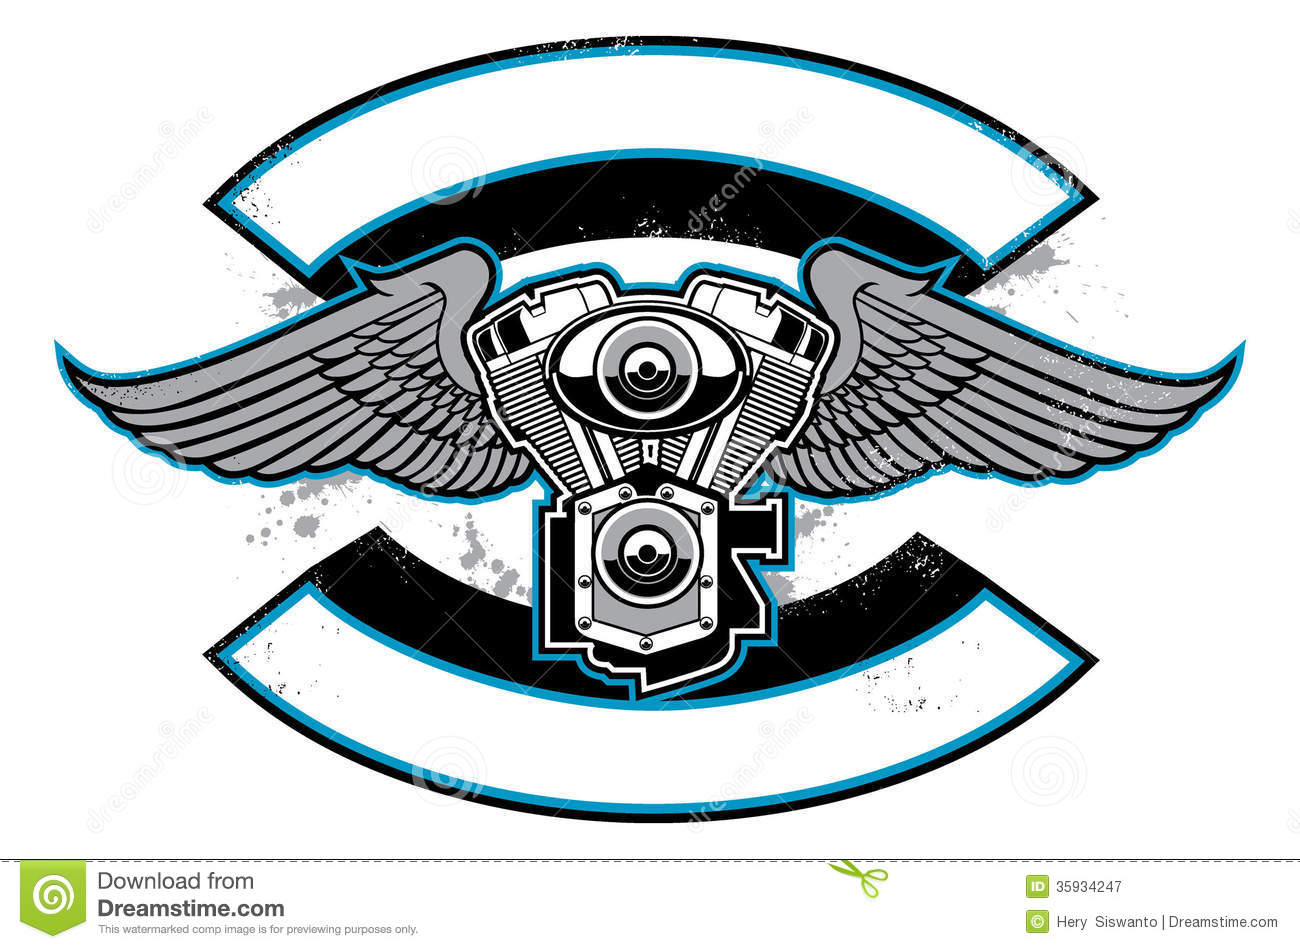 Engine clipart vector free download Royalty Engine Motorbike Free Badge